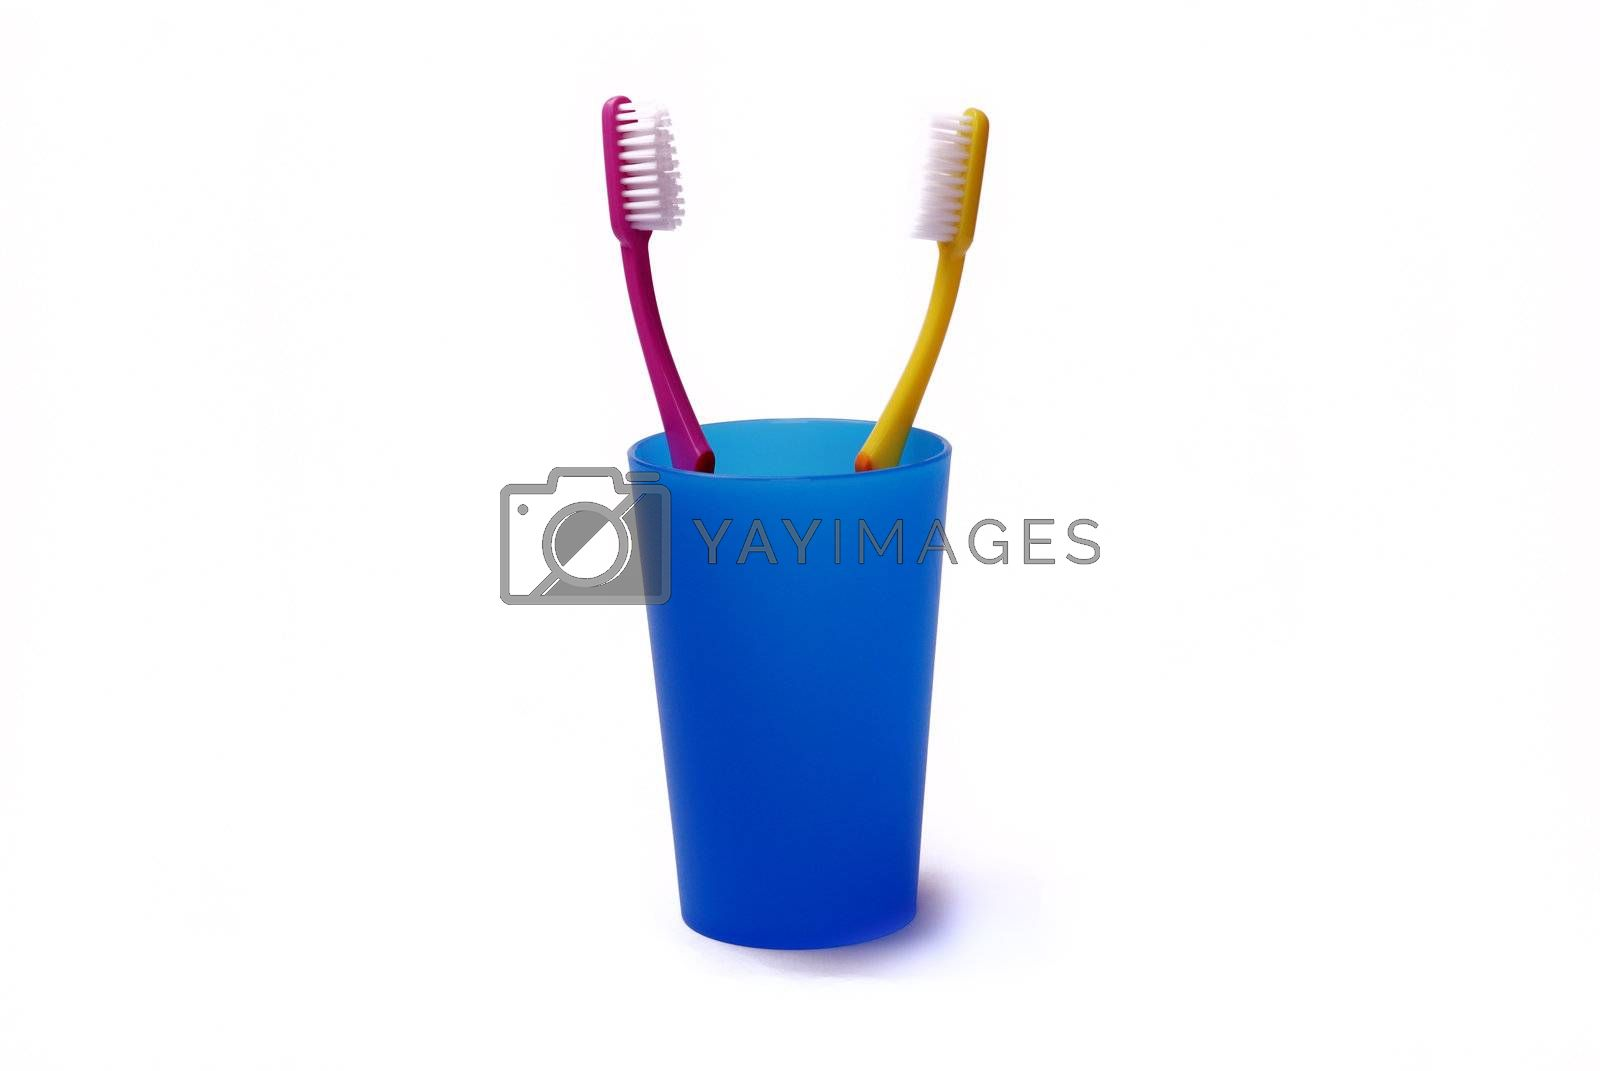 Toothbrushes in a color holder